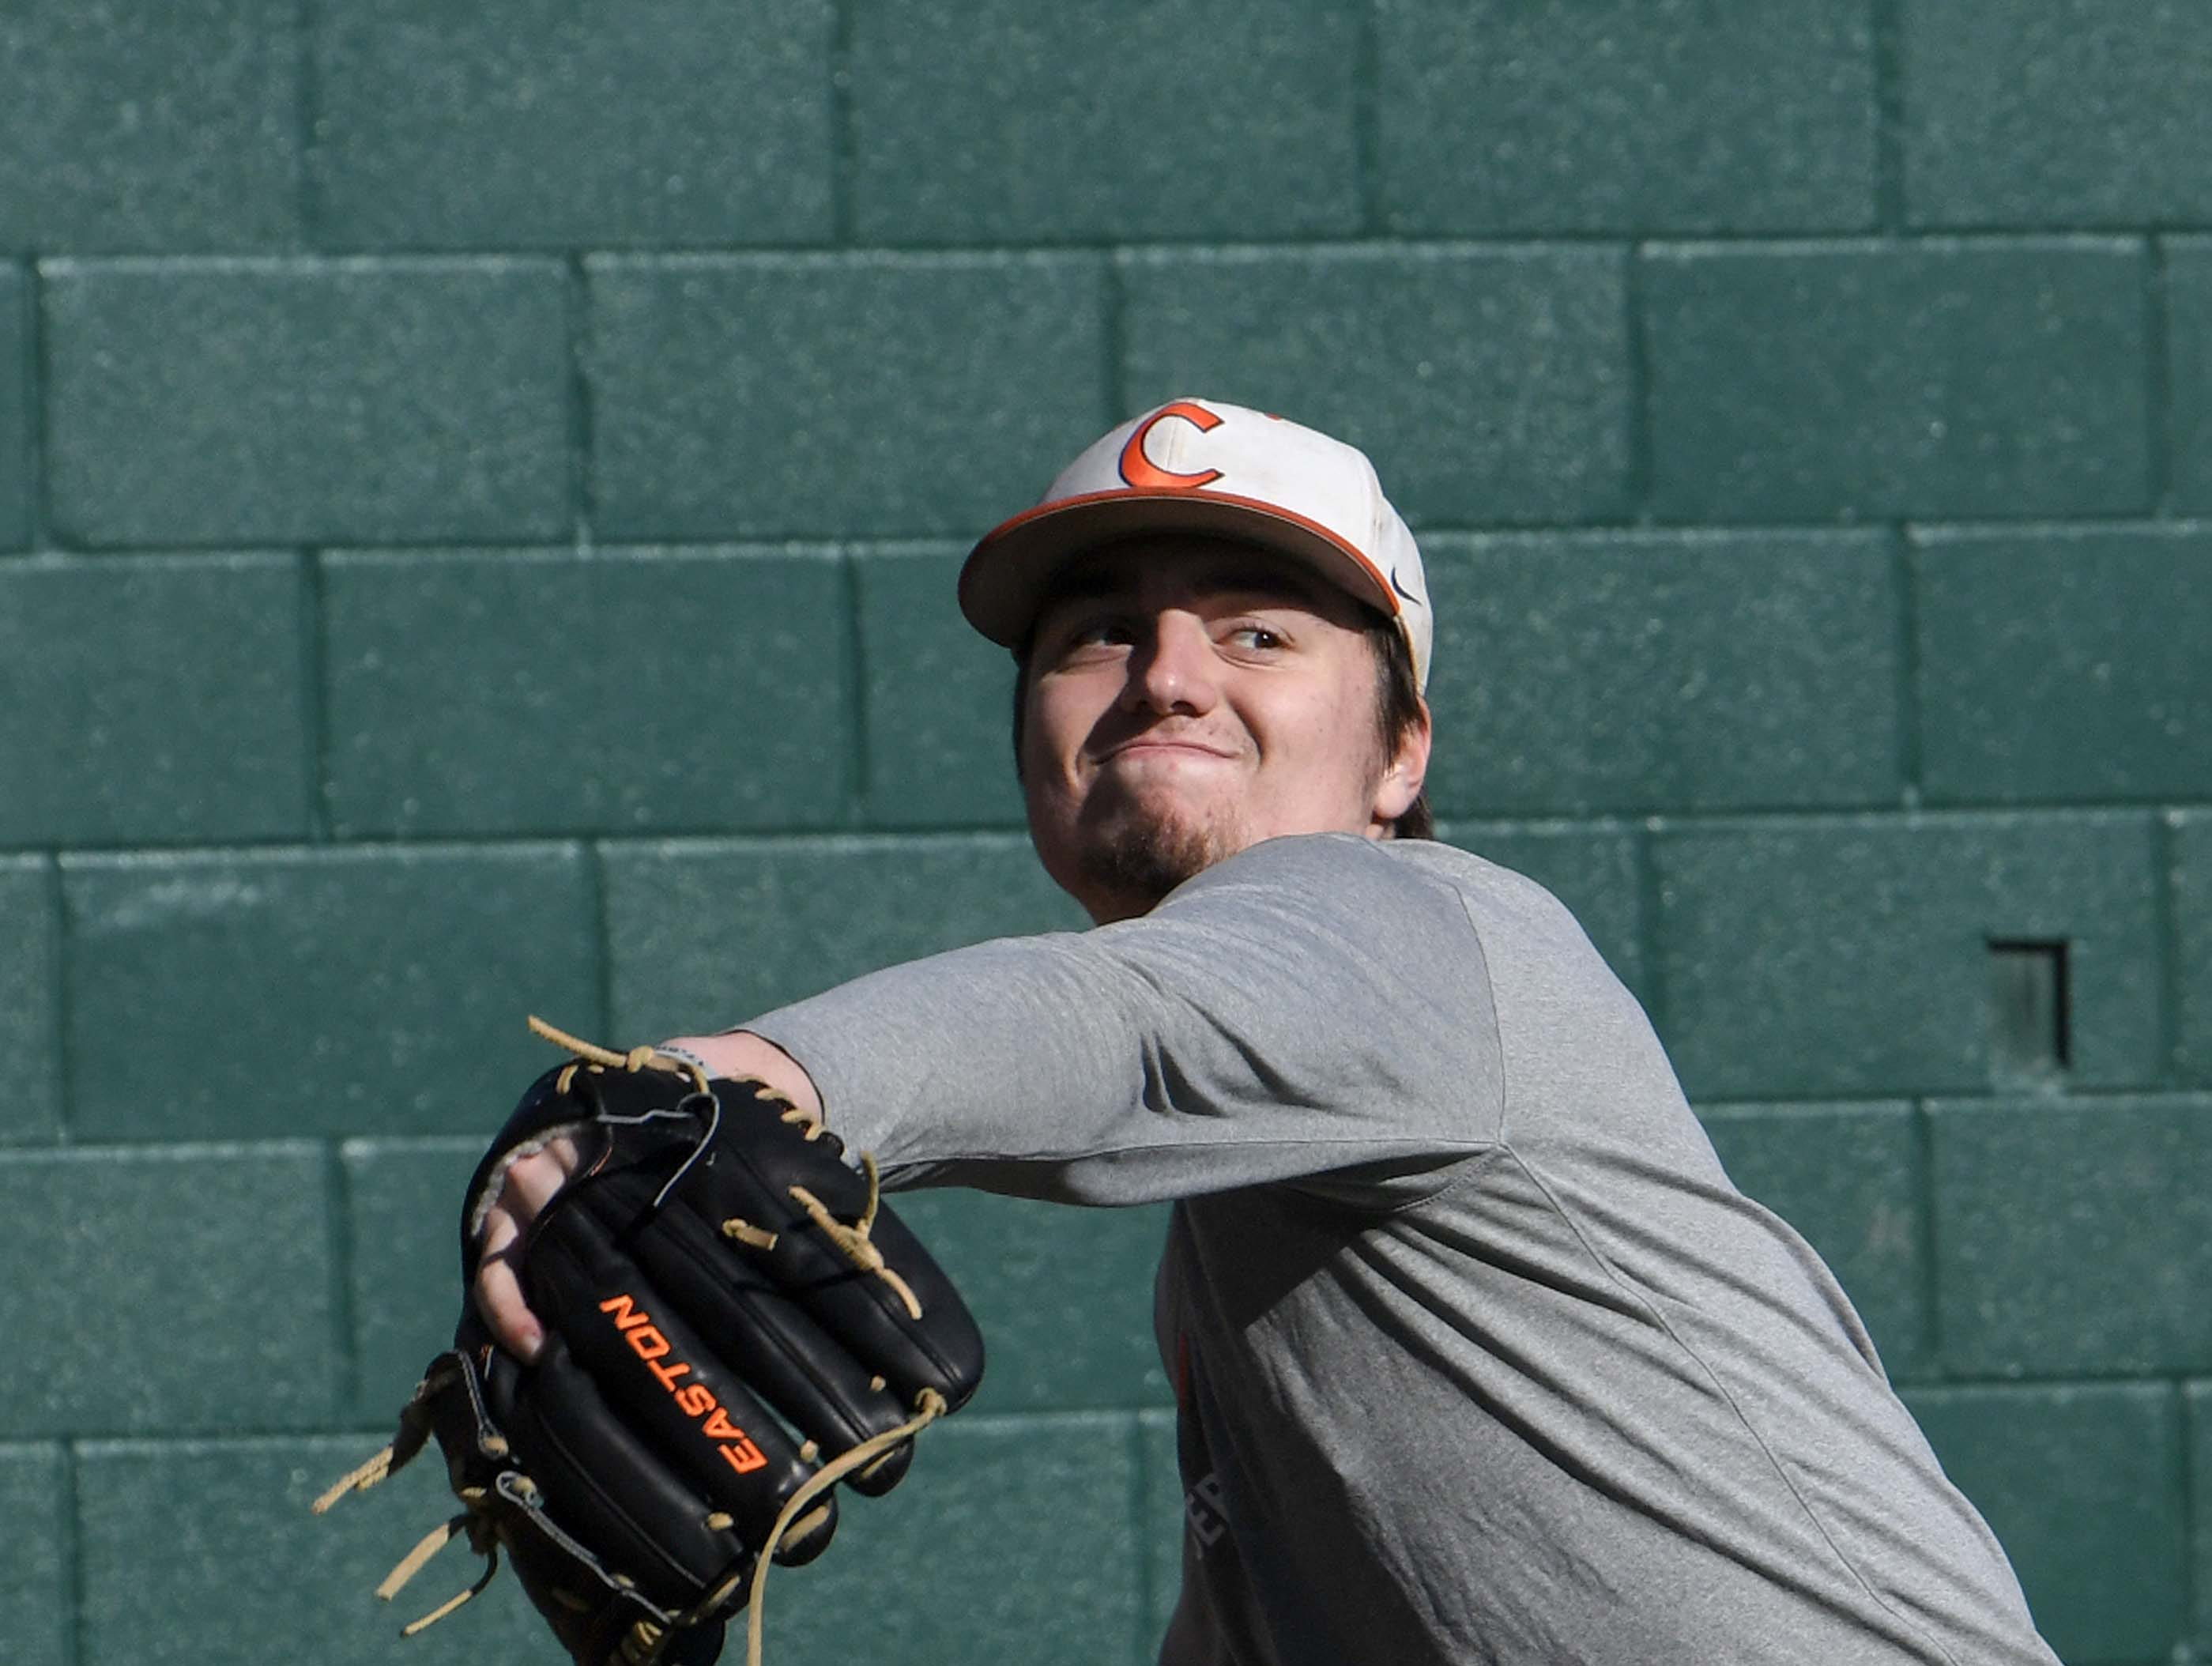 Clemson freshman pitcher Jackson Linley warms up during practice at Doug Kingsmore Stadium in Clemson Friday.